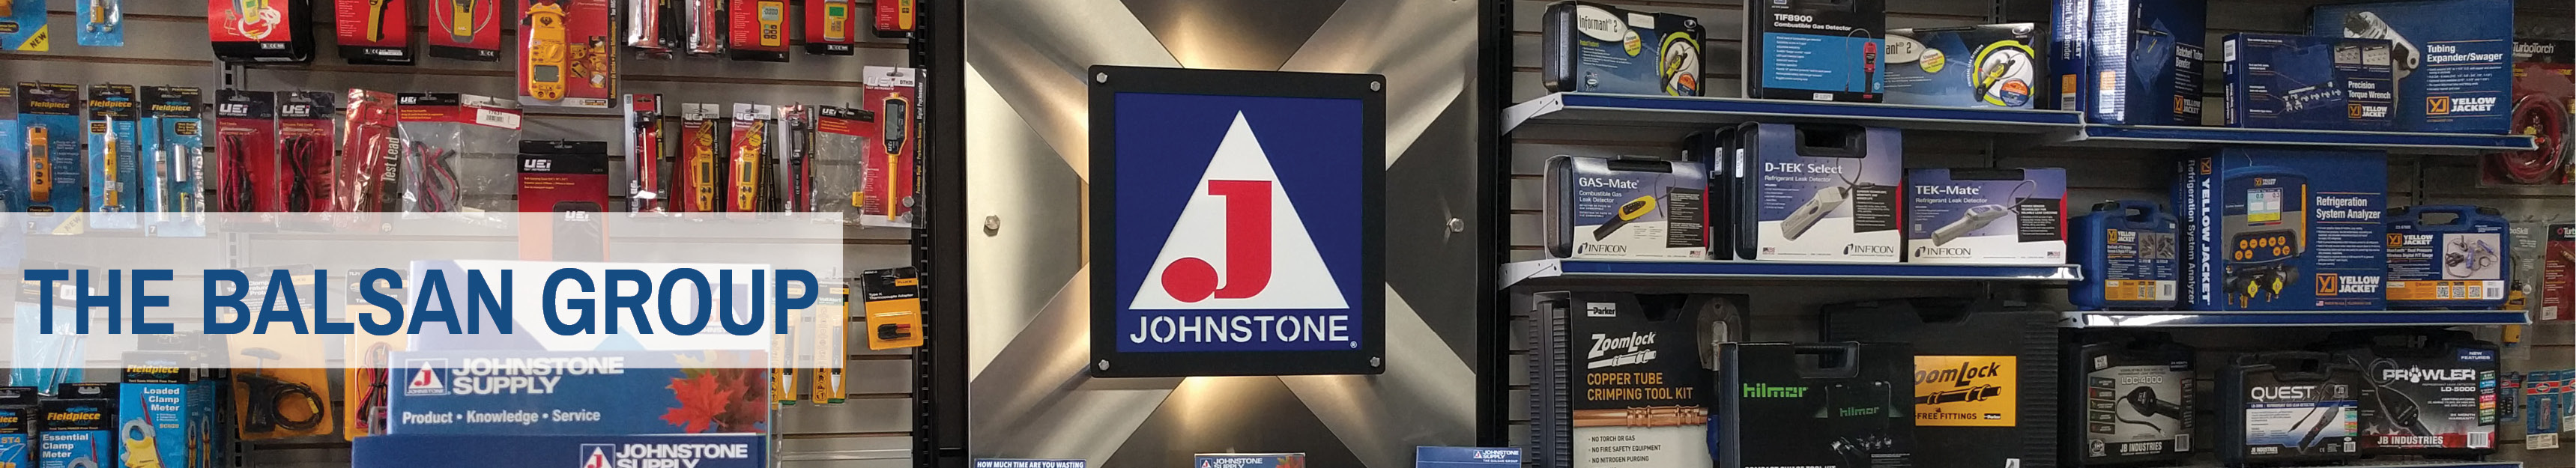 HVAC/R Knowledge - About Johnstone Supply, The Balsan Group